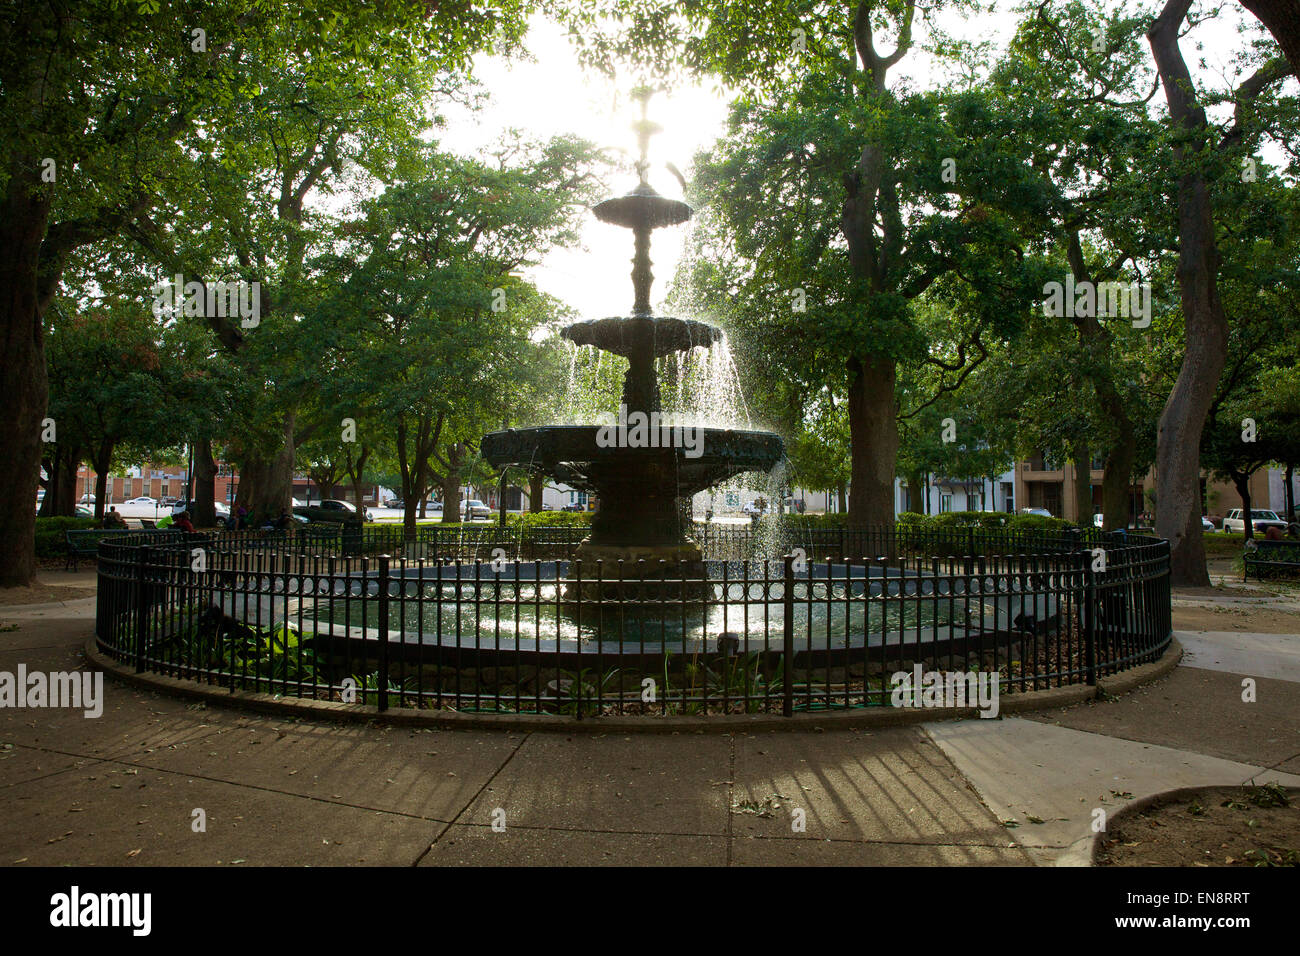 Water flowing in the fountain in the Bienville Square City Park in downtown Mobile, Alabama in the afternoon sunlight. - Stock Image